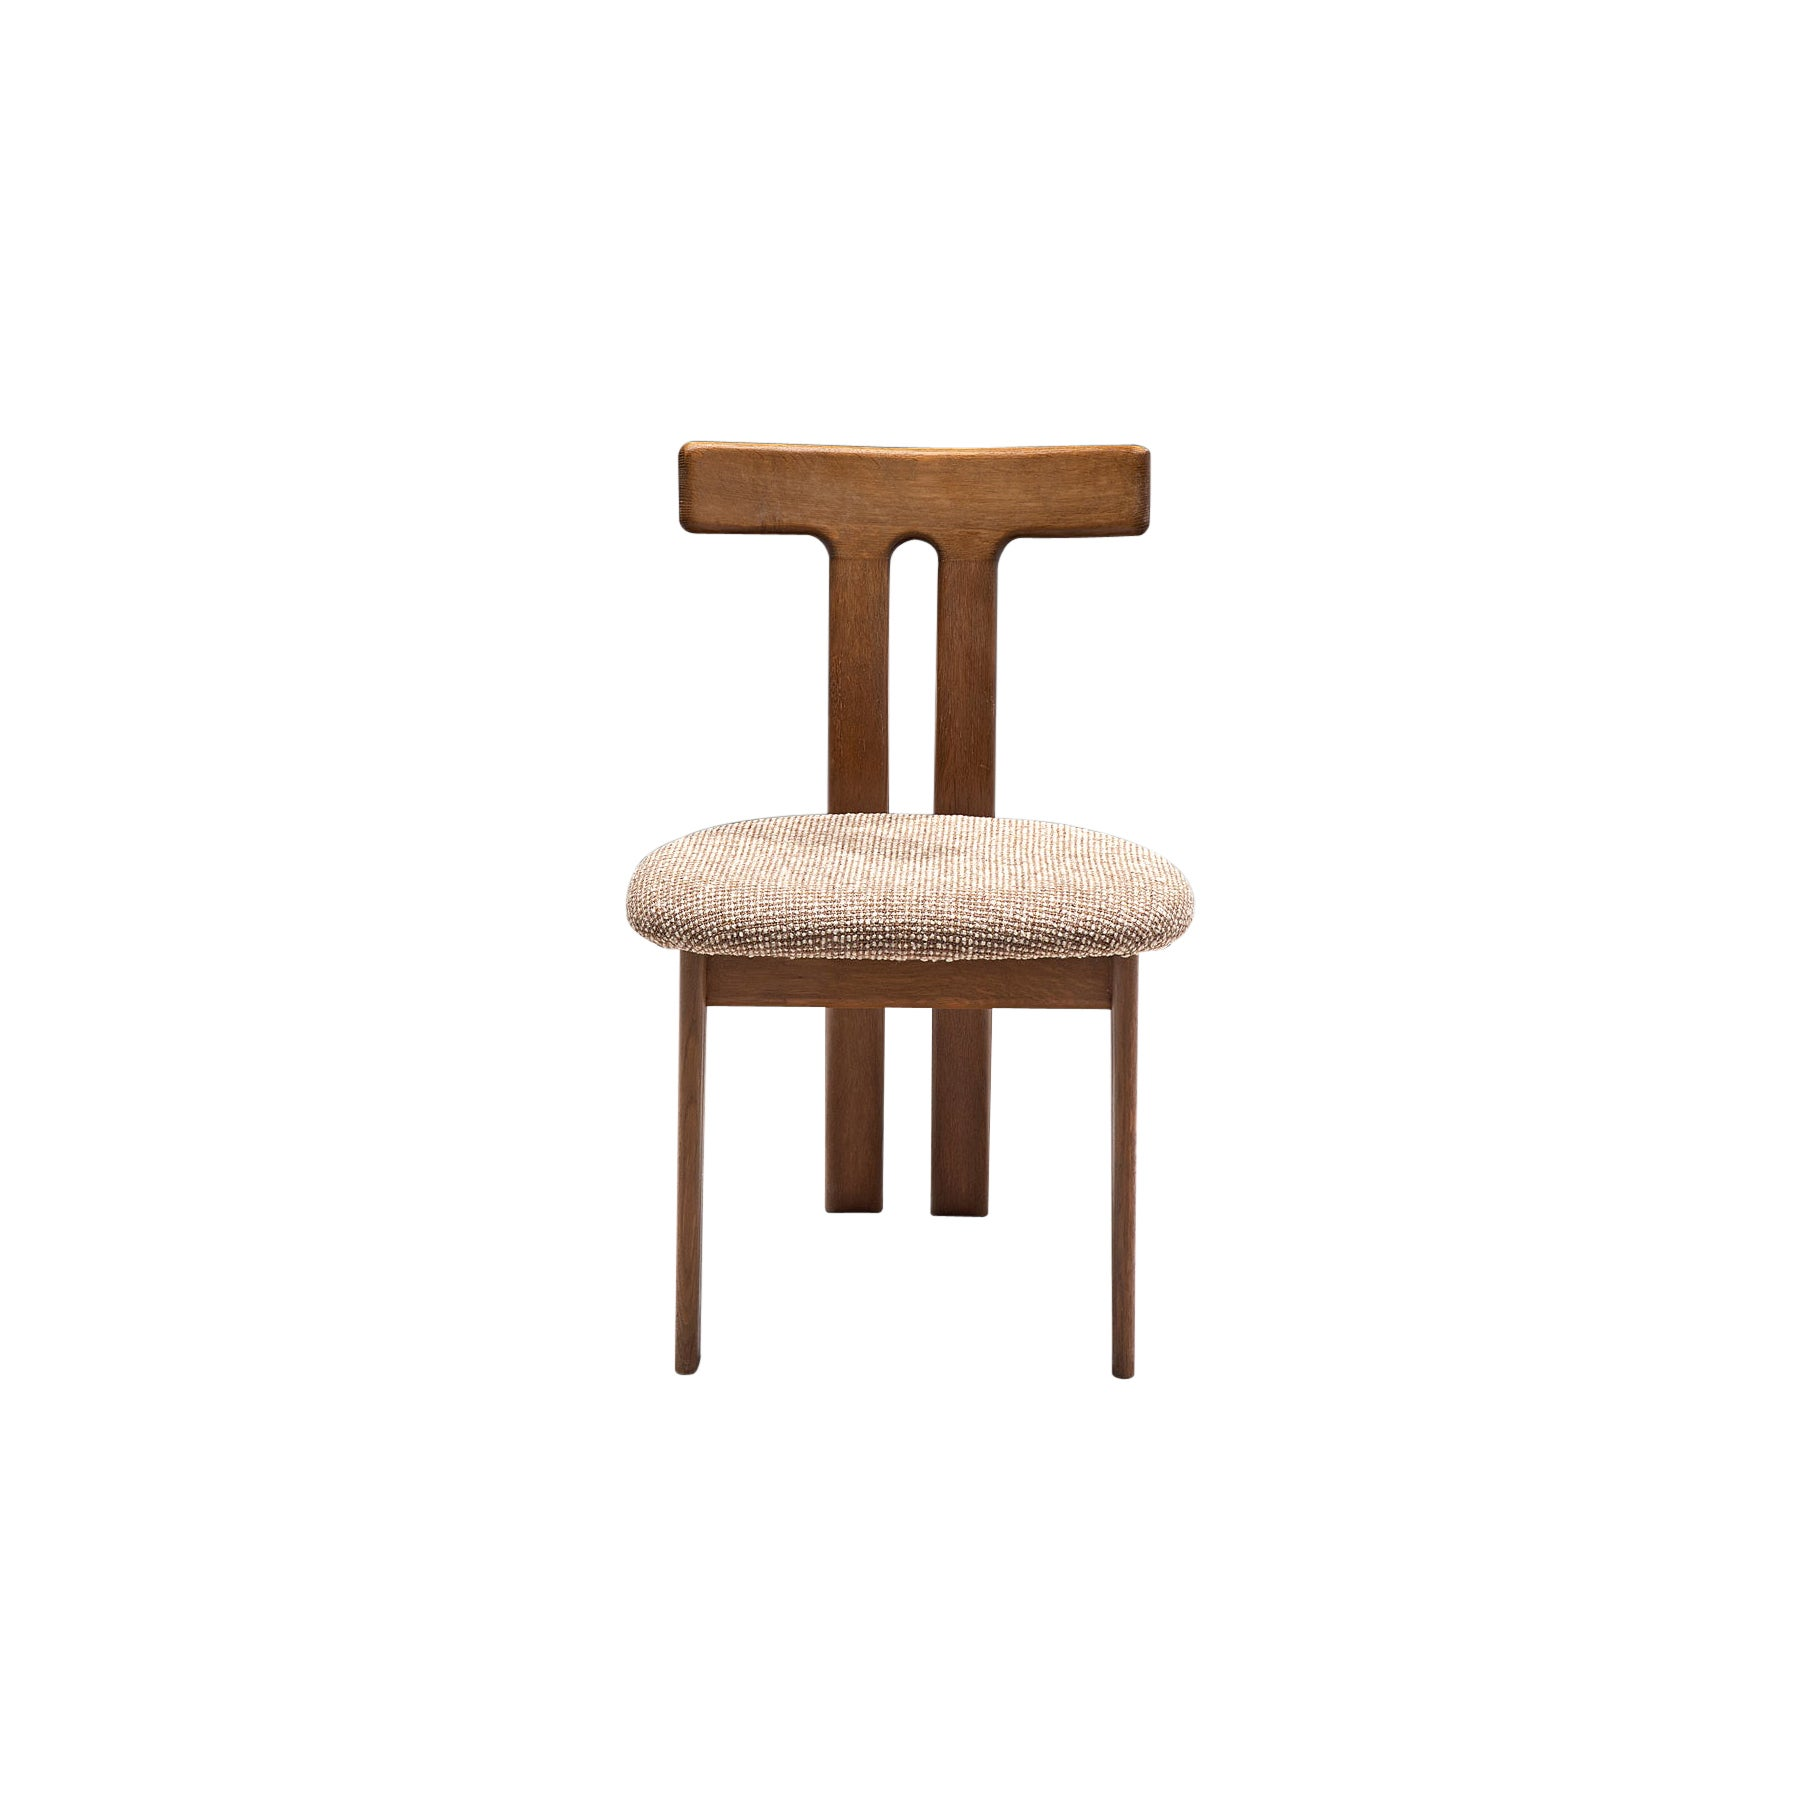 French Dining Chair in Oak and Beige Upholstery